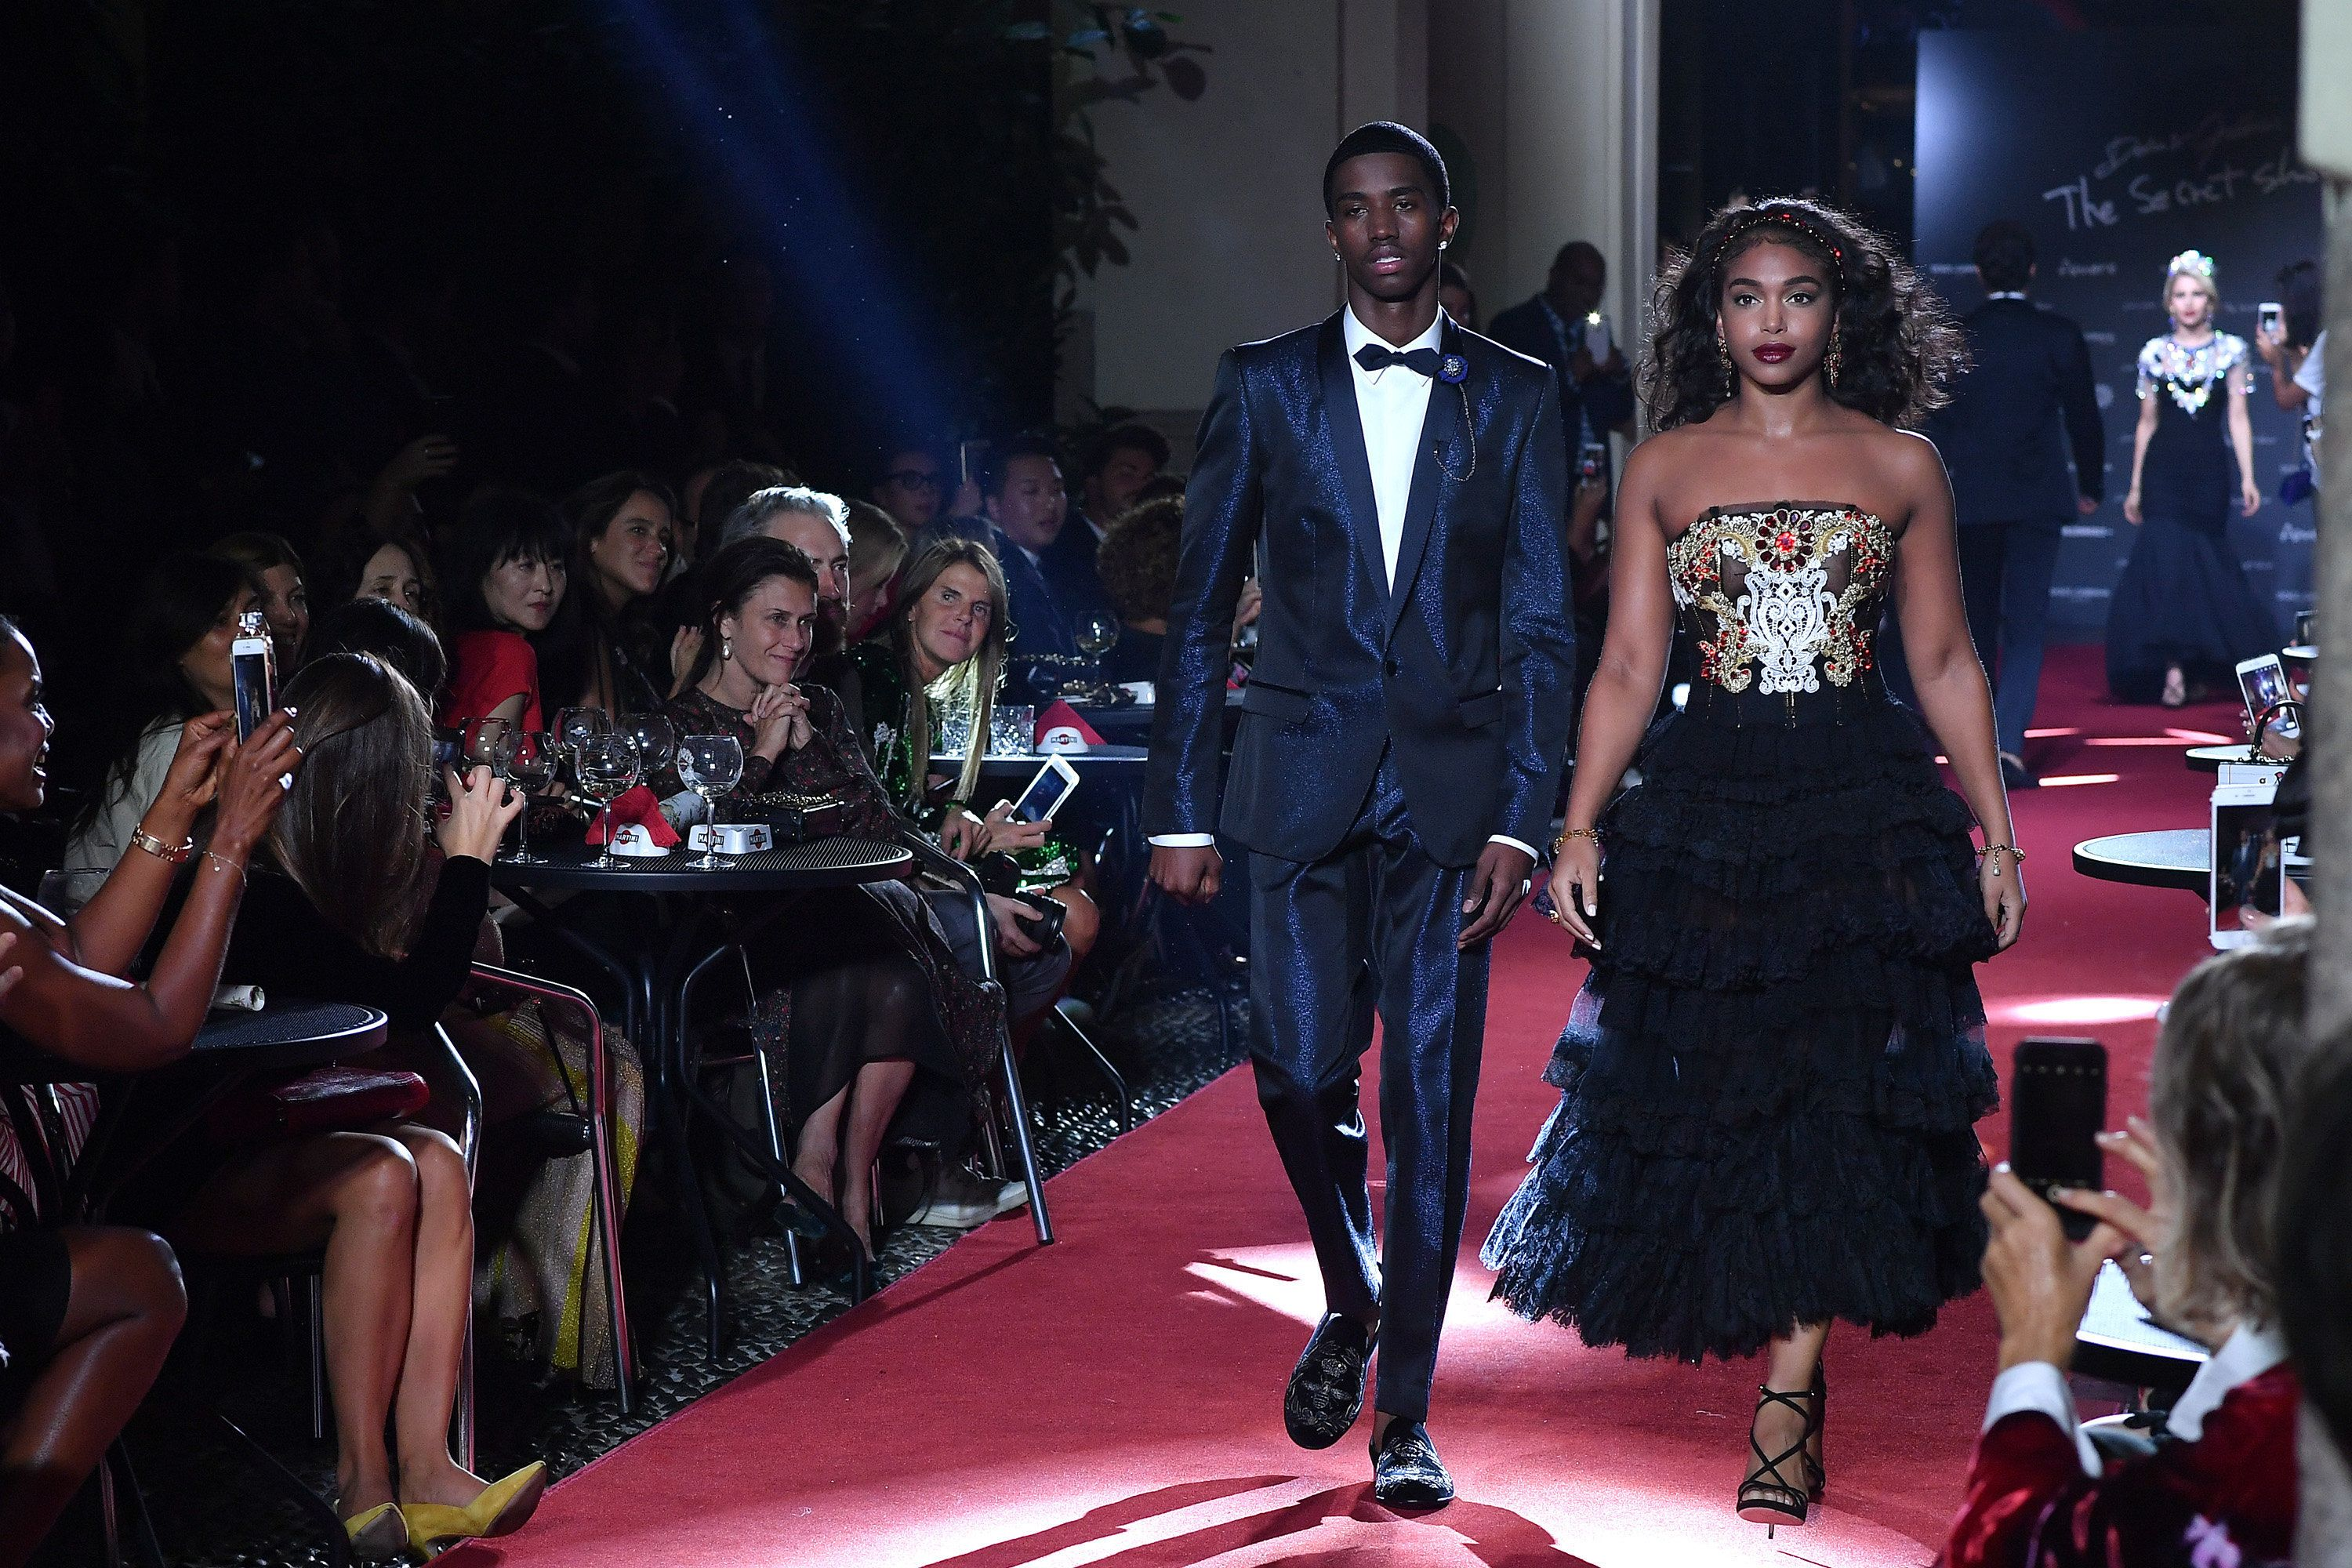 59ca86ad1900004e5d565b88 - Christian Combs, Son Of Sean 'Diddy' Combs, Models For Dolce & Gabbana